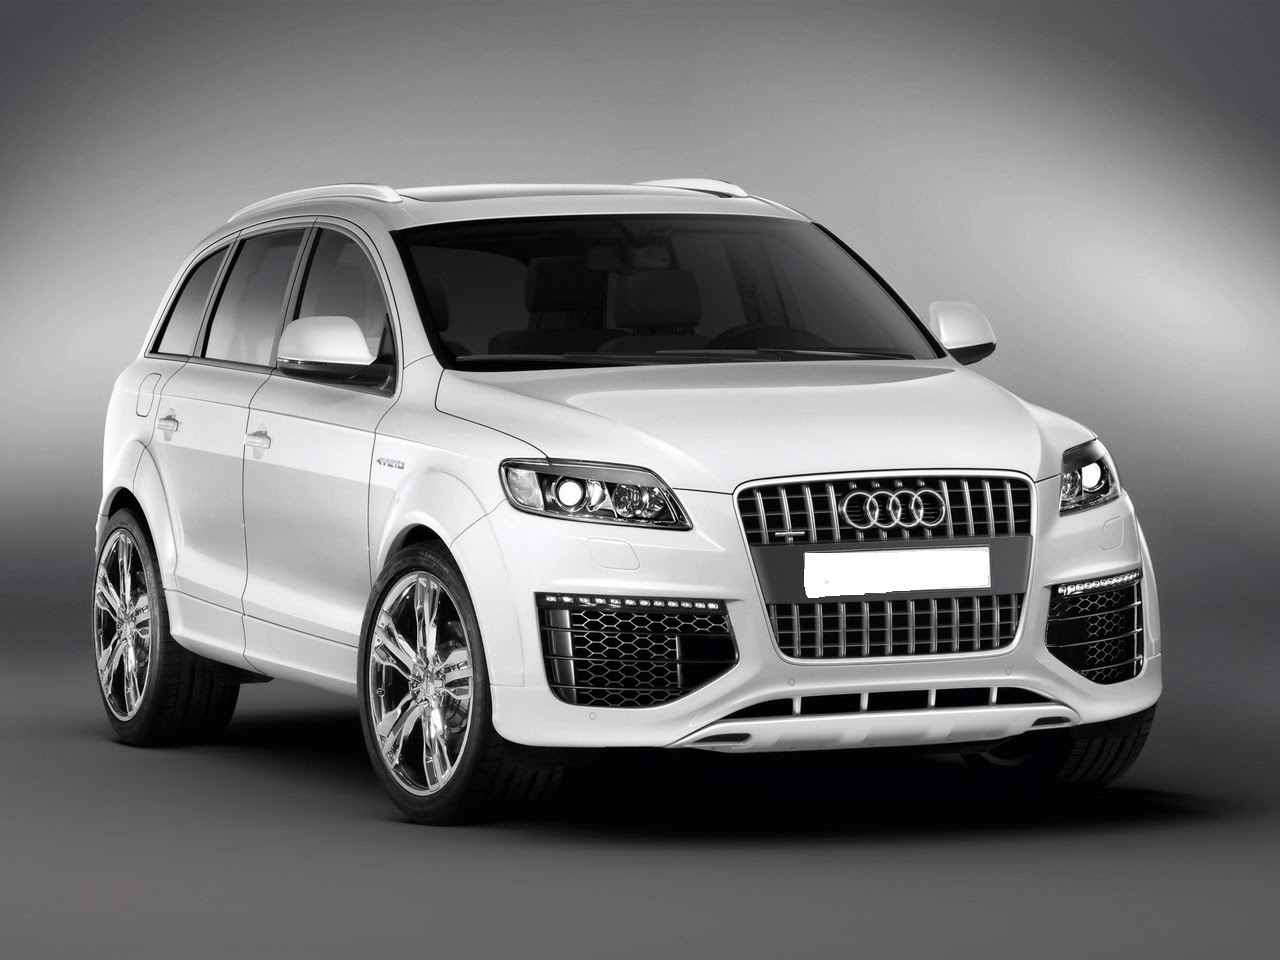 audi q7 2009 repair manual [ 1280 x 960 Pixel ]